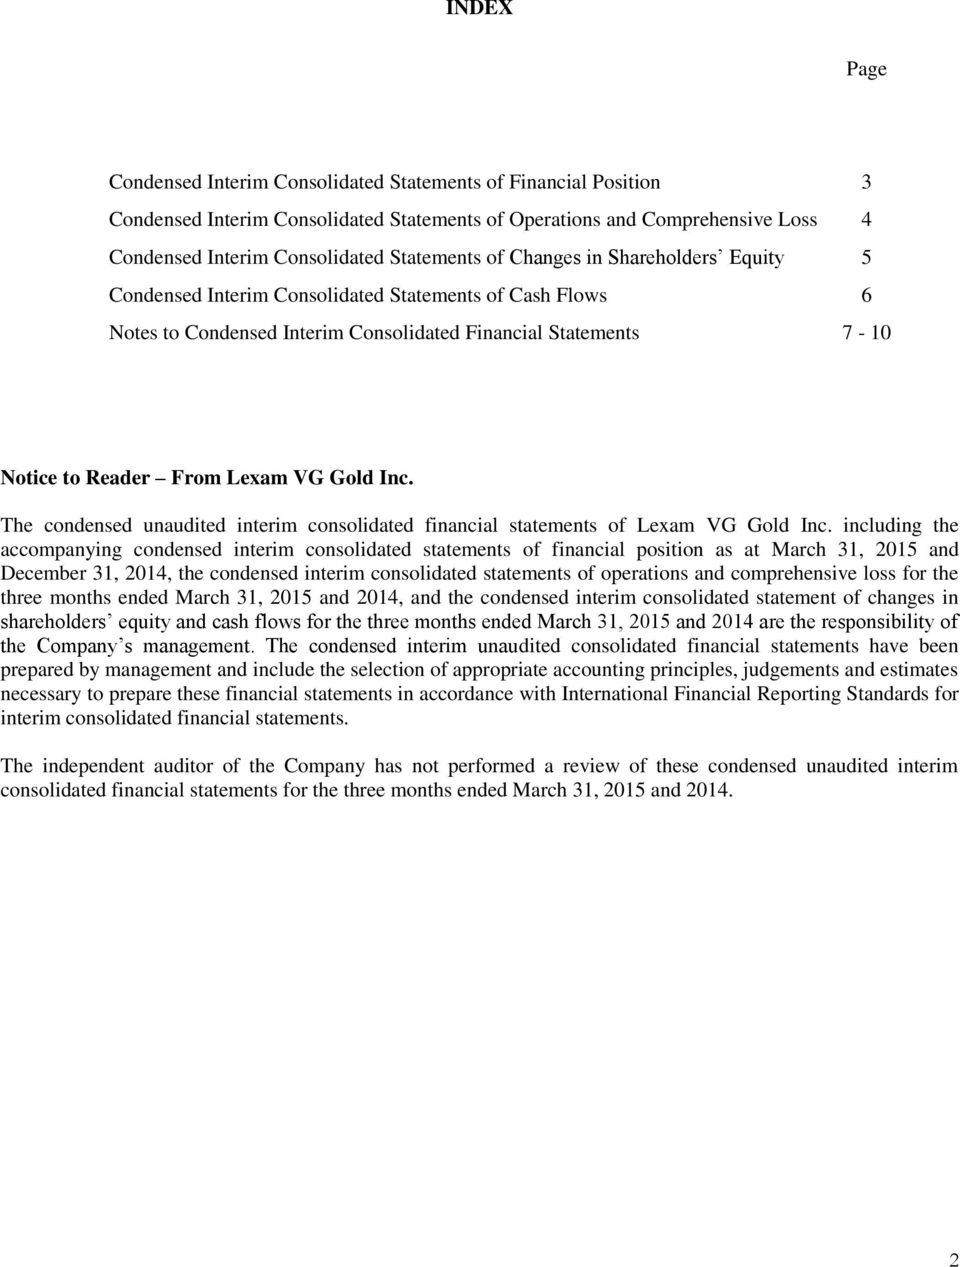 The condensed unaudited interim consolidated financial statements of Lexam VG Gold Inc.